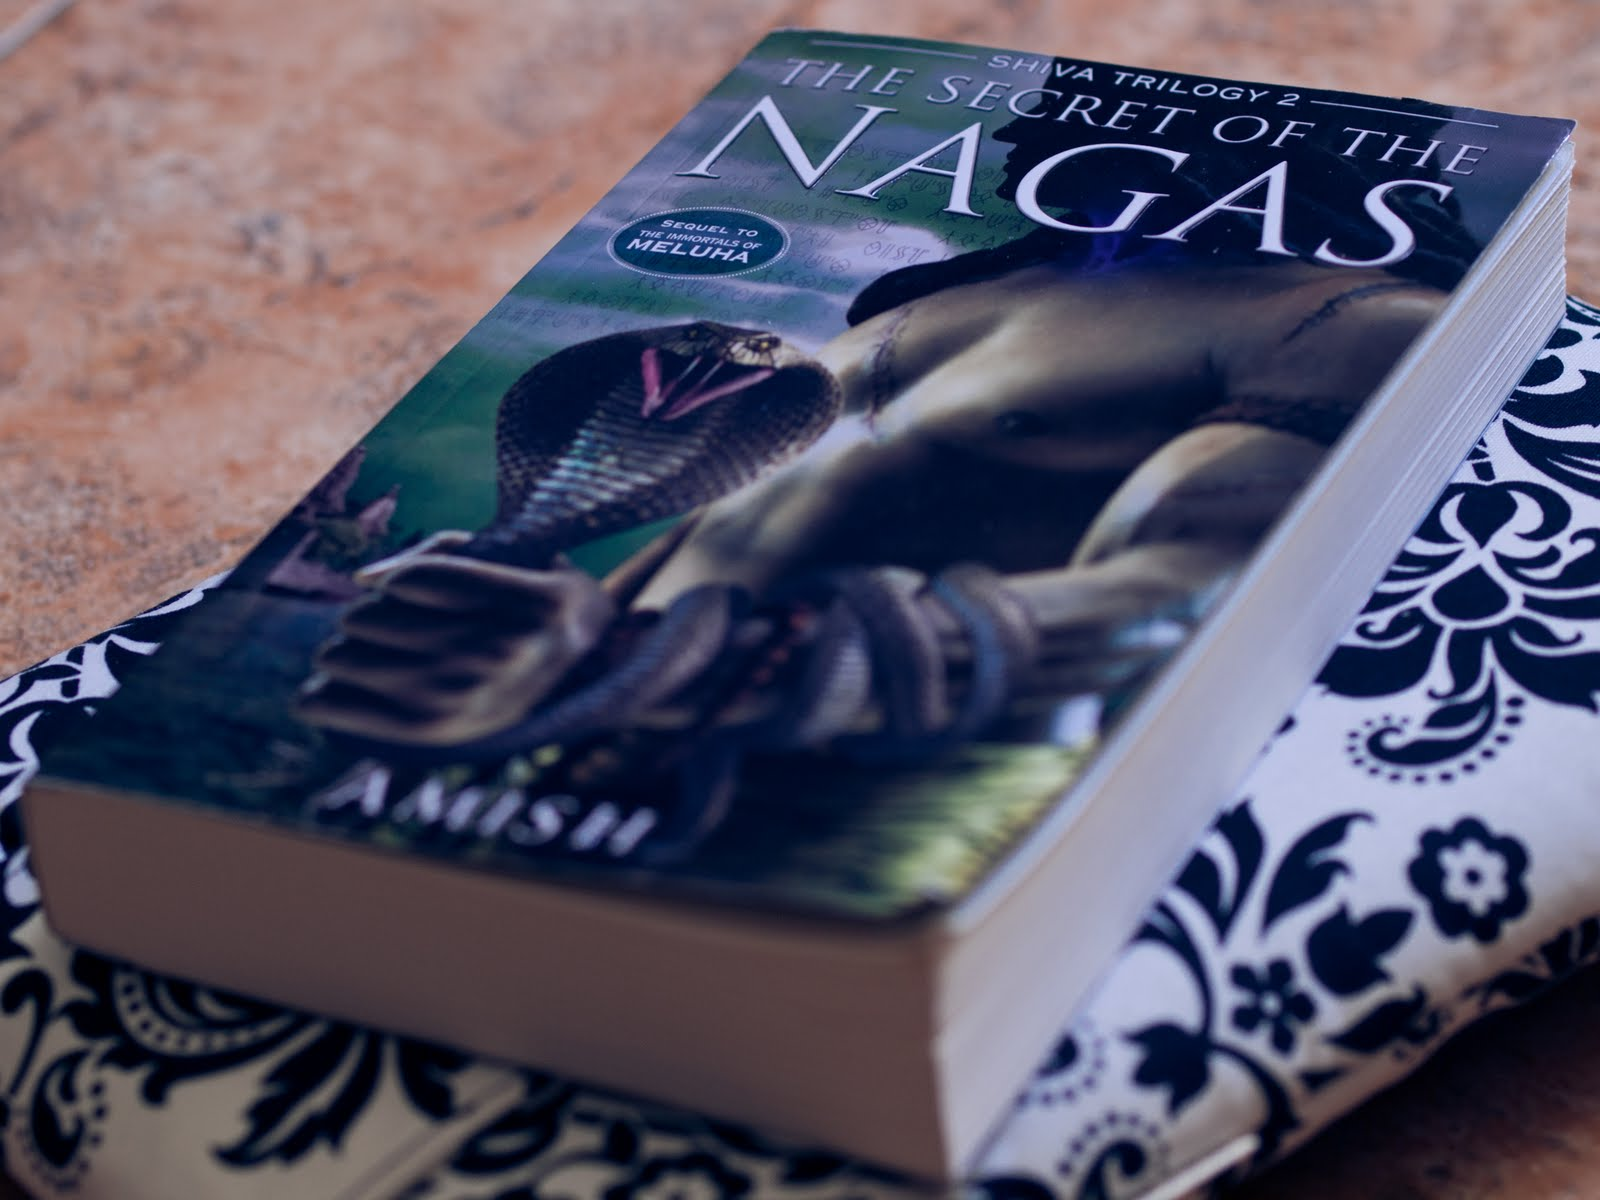 Immortals Of Meluha And The Secret Of The Nagas And getting into theImmortals Of Meluha And The Secret Of The Nagas